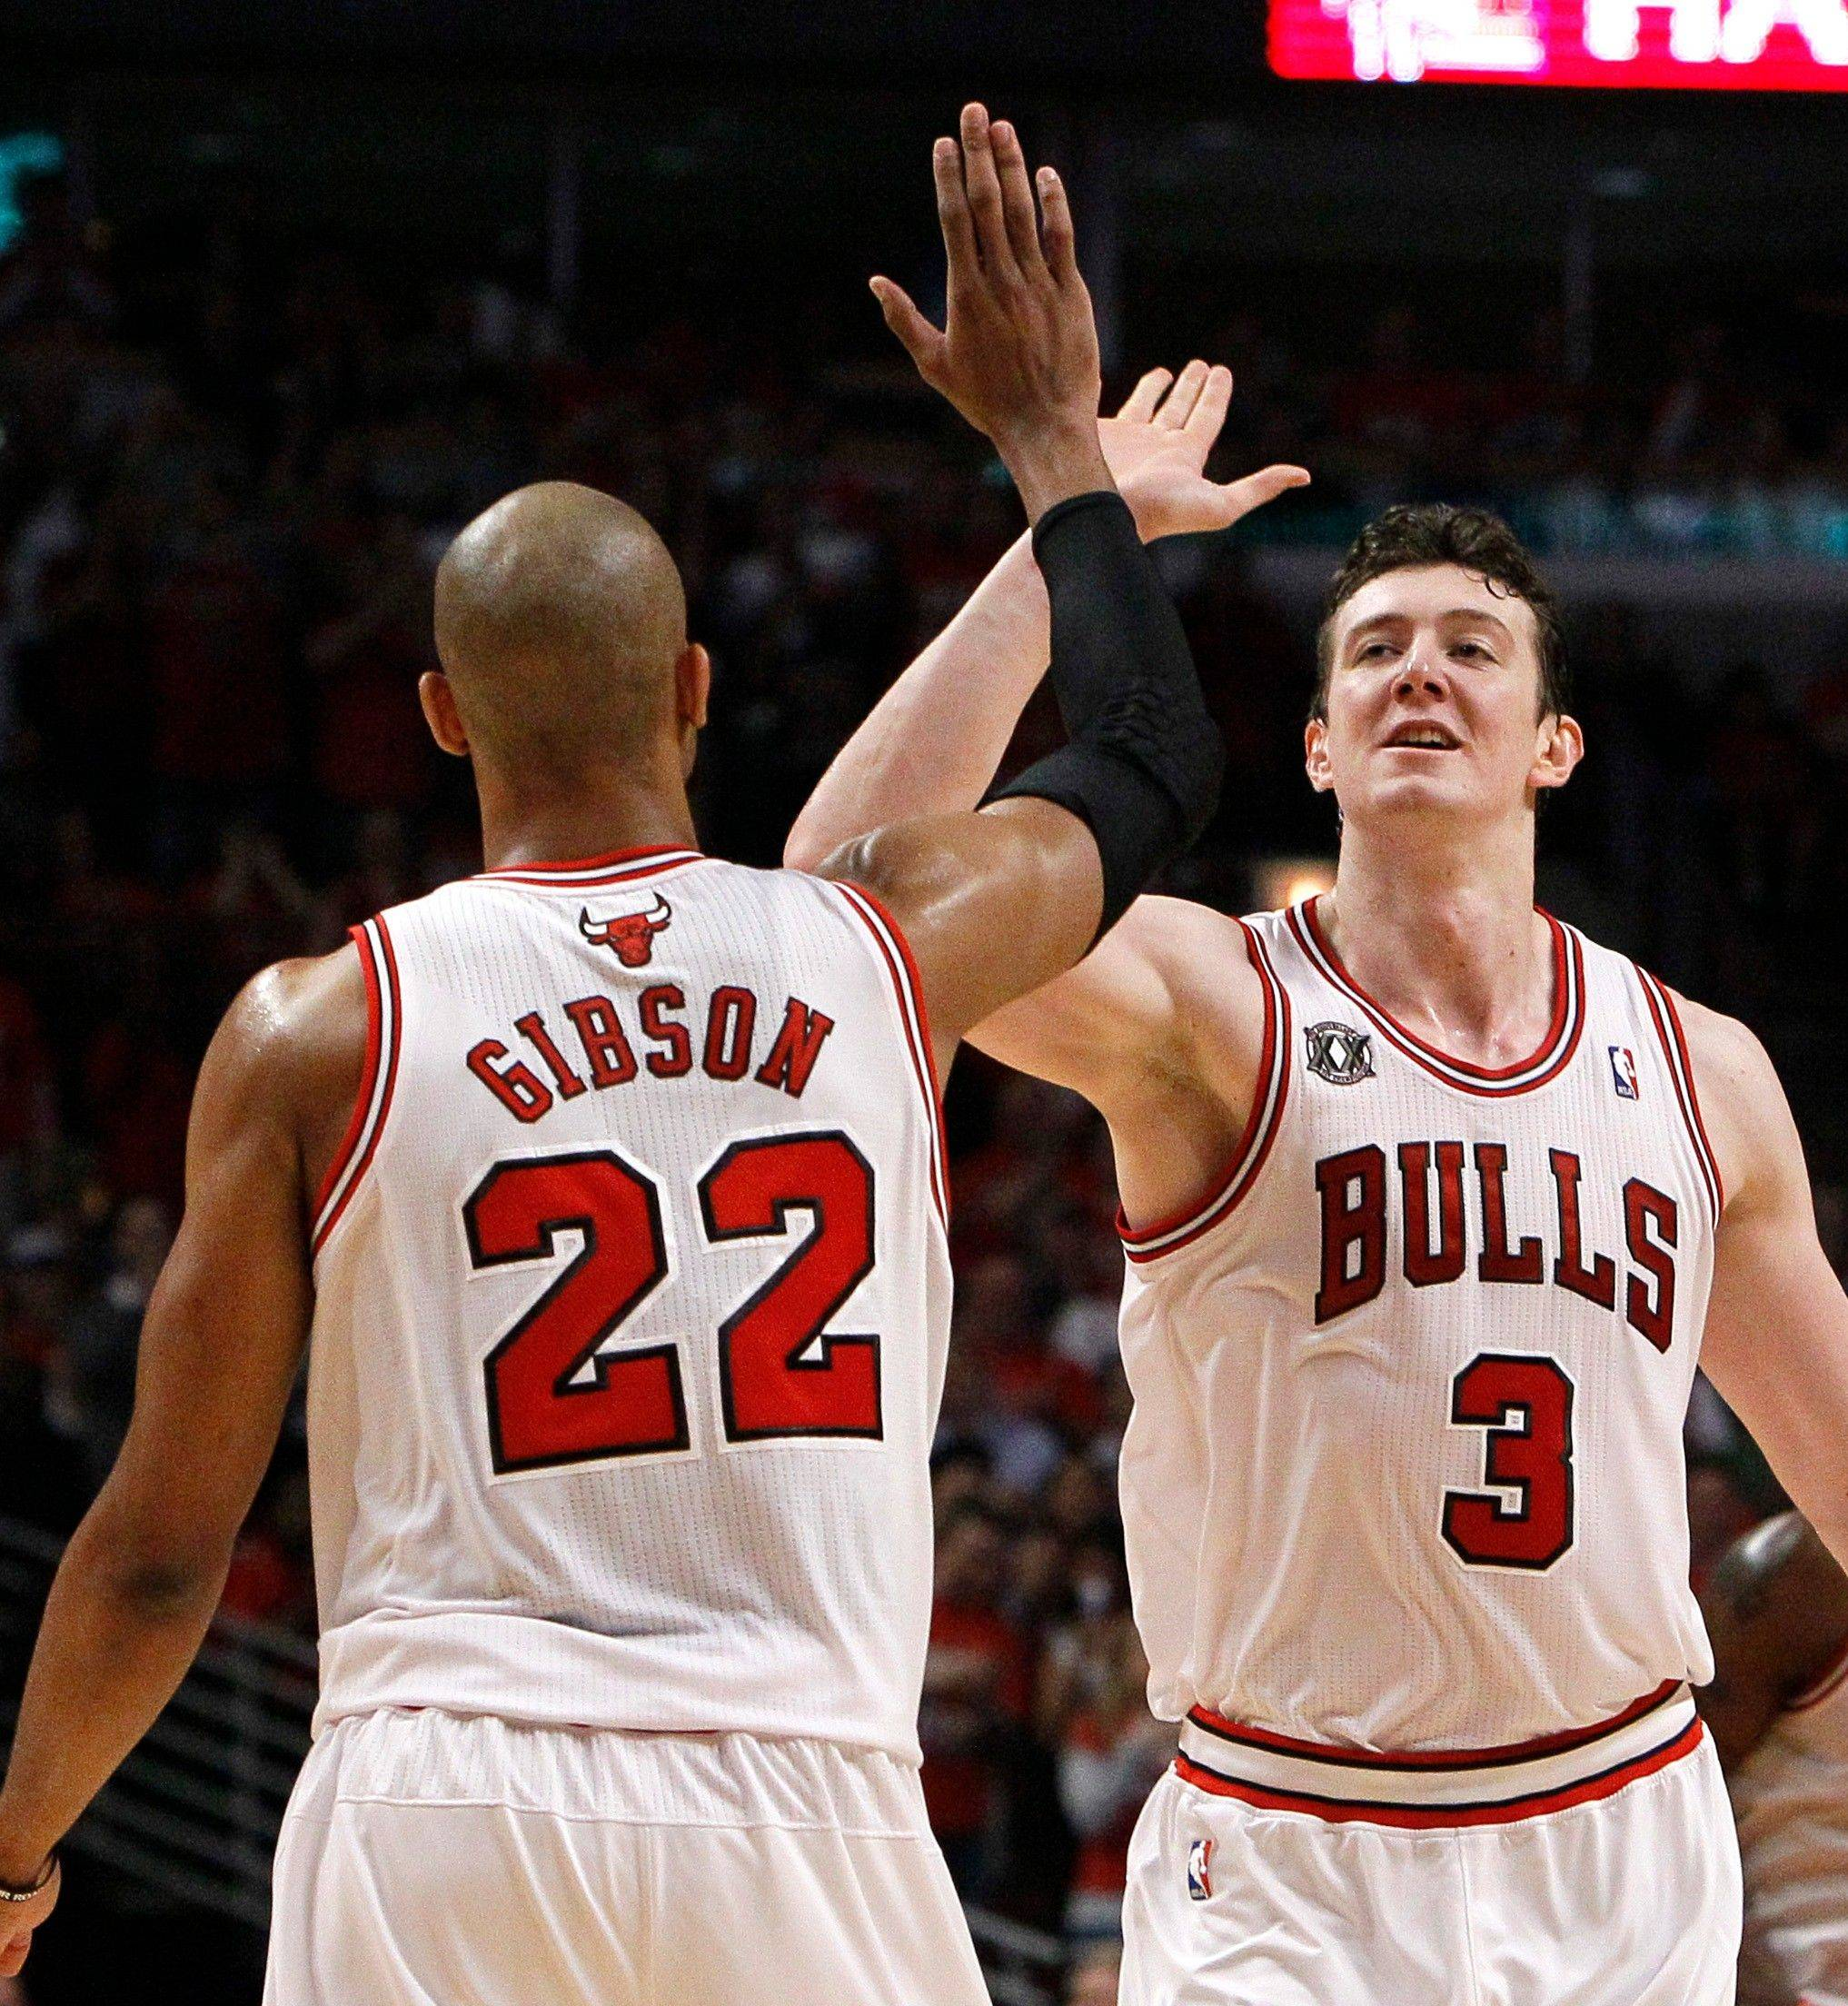 Bulls players say they're not surprised by the growth and presence of center Omer Asik in the playoffs. He has become the team's best basket protector in the postseason and his size has bothered Miami.